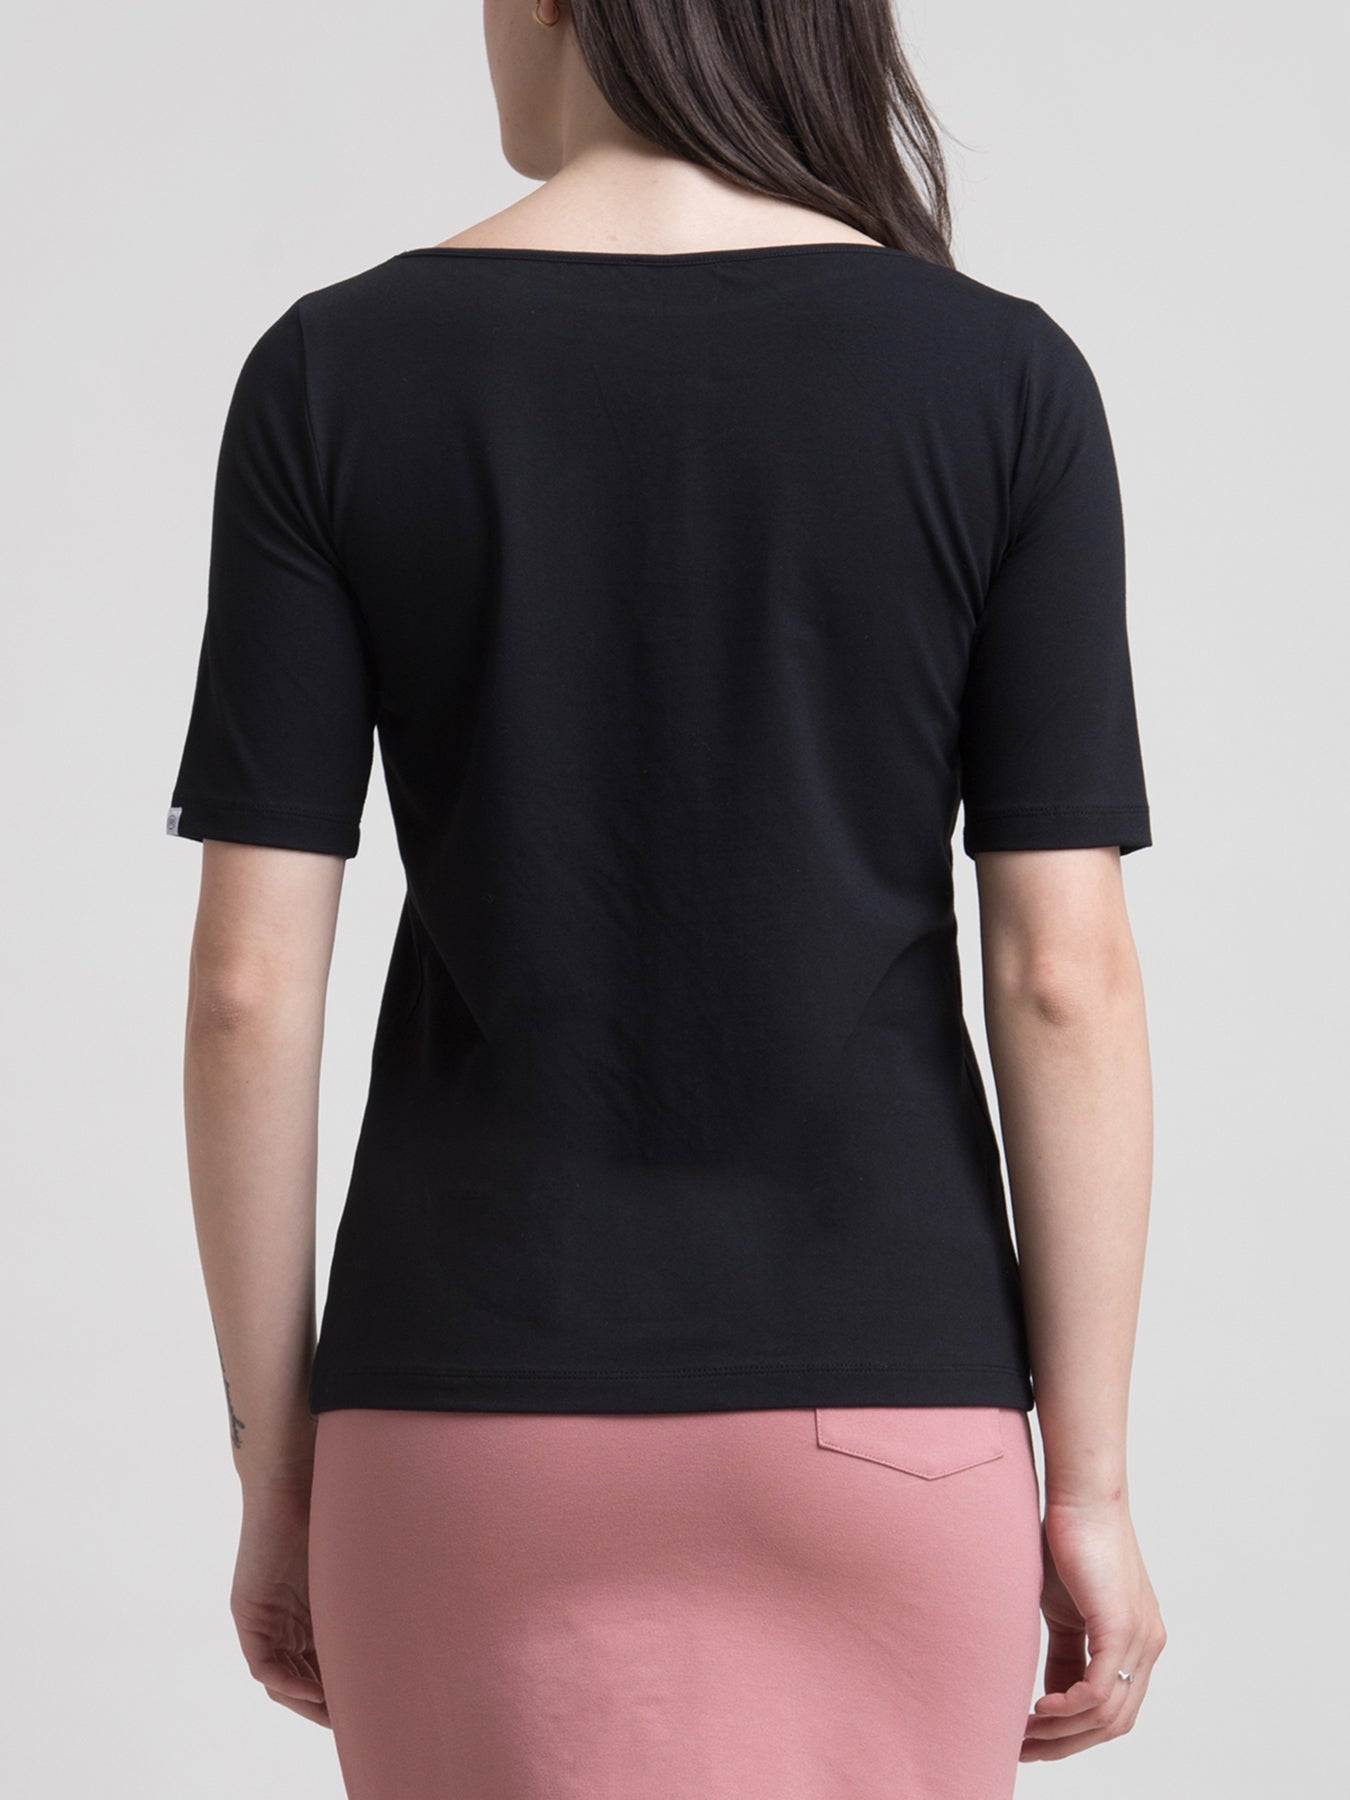 Cotton Boat Neck Knitted T Shirt - Black